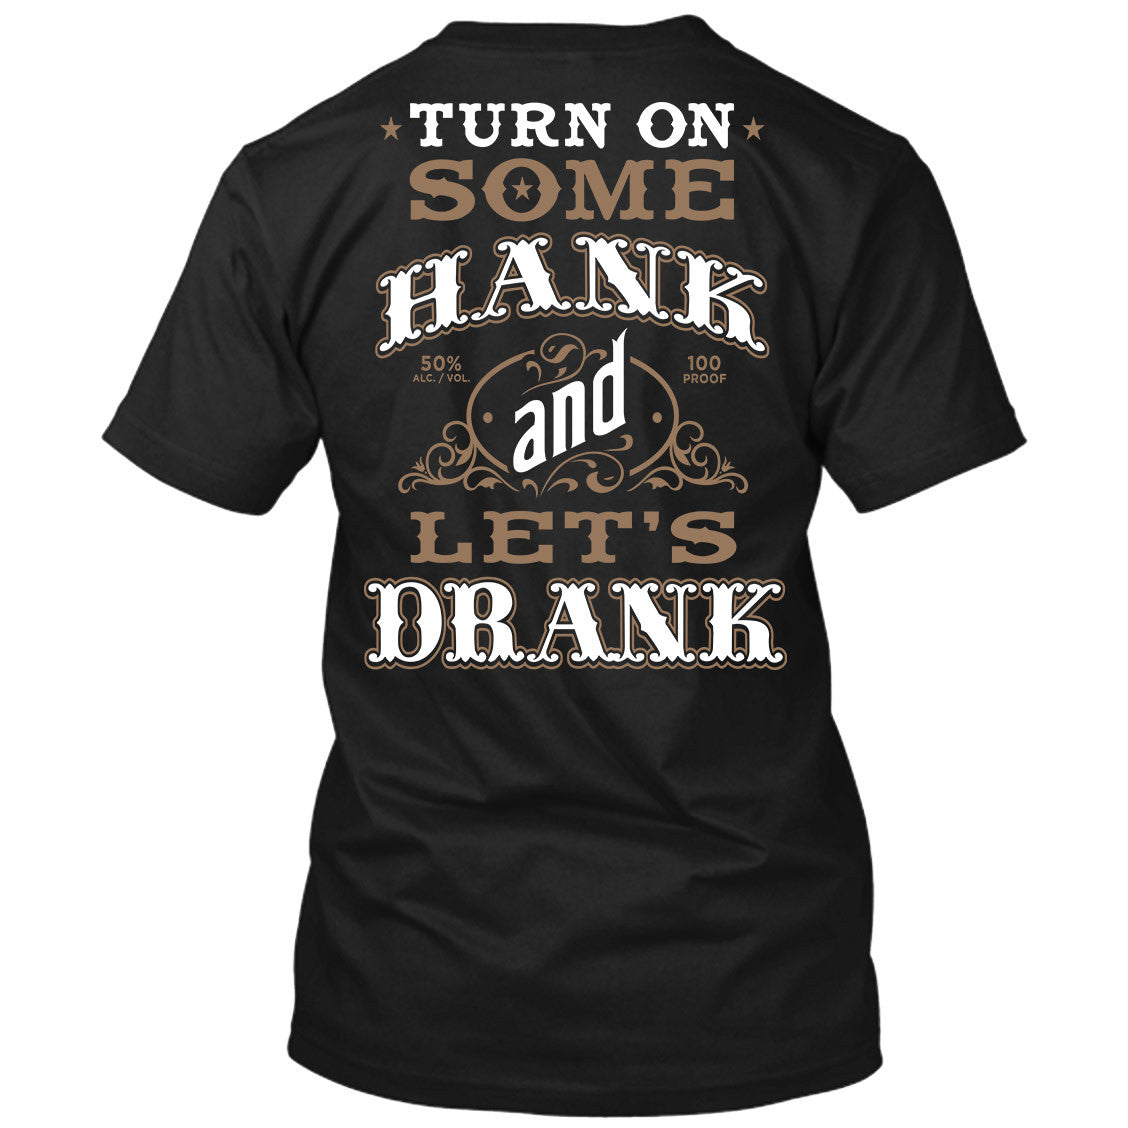 Turn On Some Hank And Let's Drank Shirt Black / Small, T-Shirts - Cute n' Country, Cute n' Country  - 1